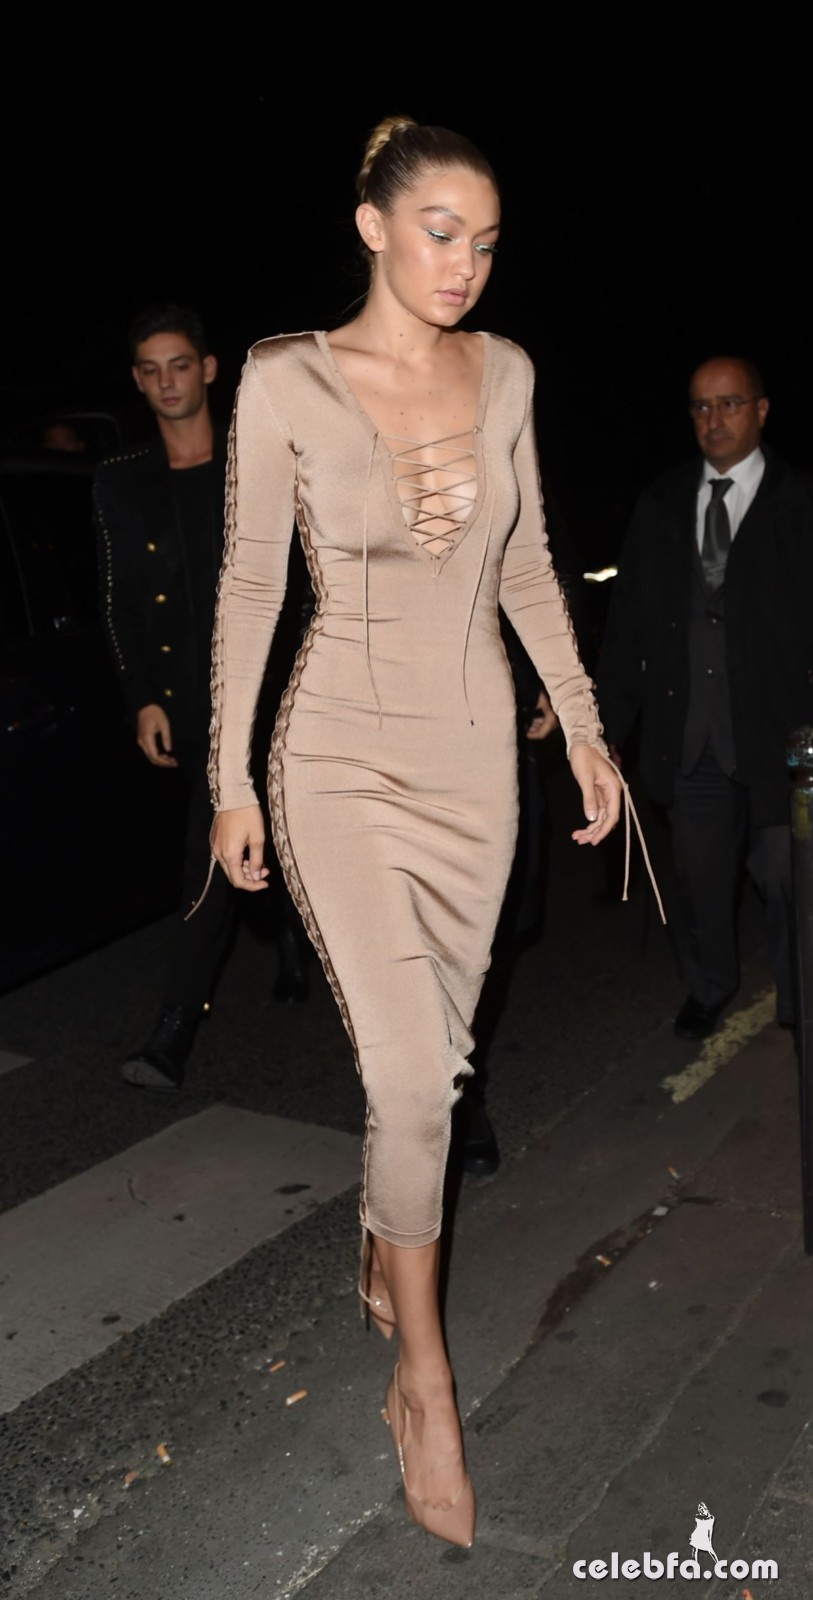 gigi-hadid-at-balmain-fashion-show-after-party-in-paris (4)